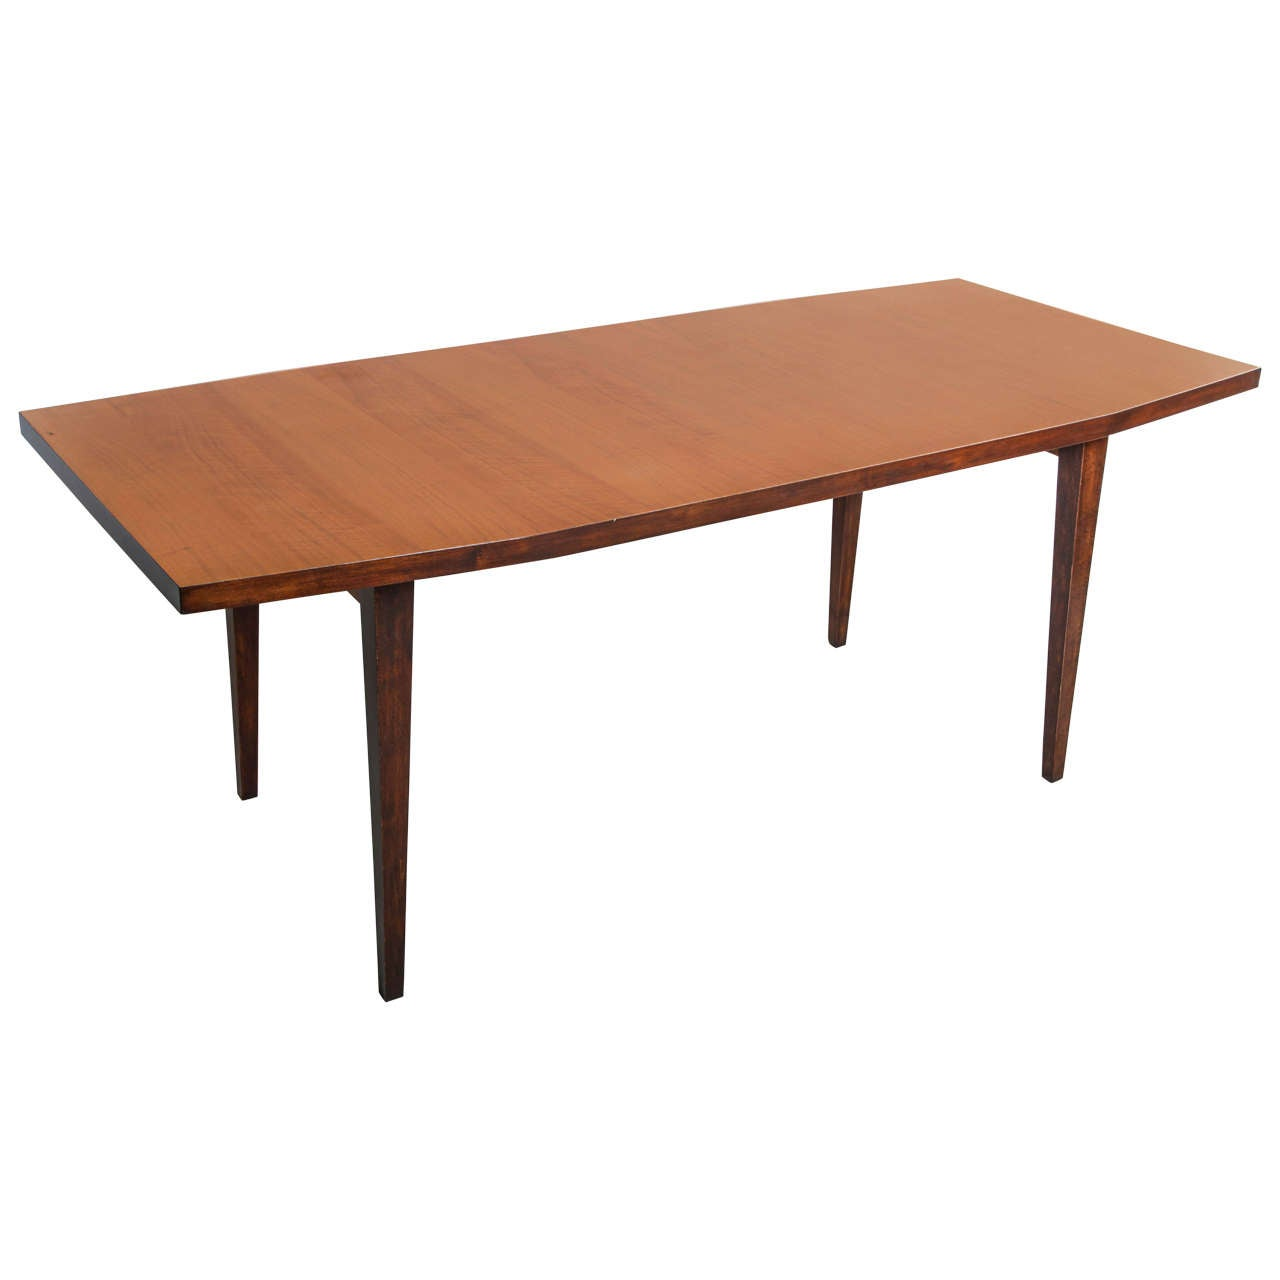 Extra Long Dining Table Part - 43: Extra Long Dining Or Conference Table By Kondor Möbel-Perfektion, 1960s 1